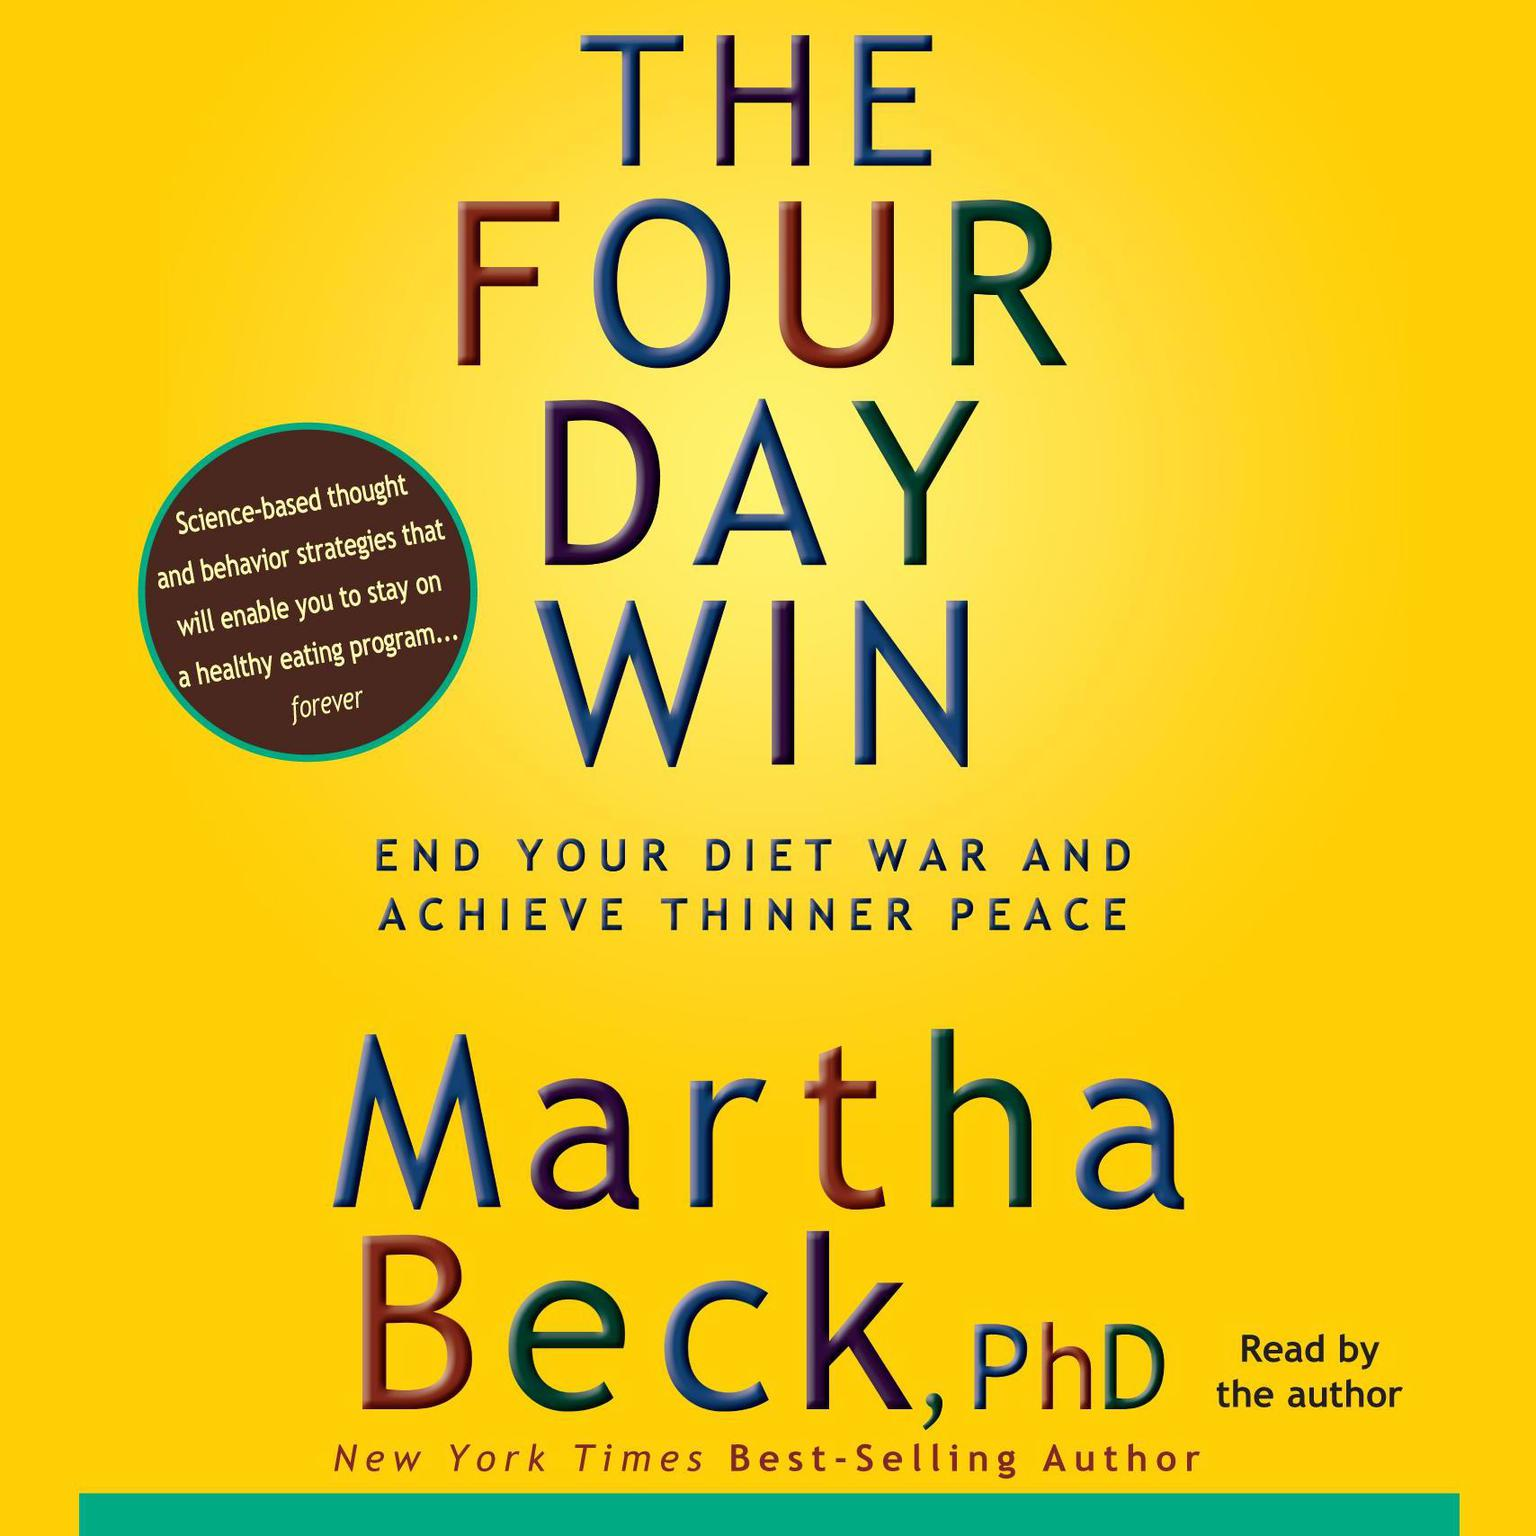 Printable The Four-Day Win: How to End Your Diet War and Achieve Thinner Peace Four Days at a Time Audiobook Cover Art